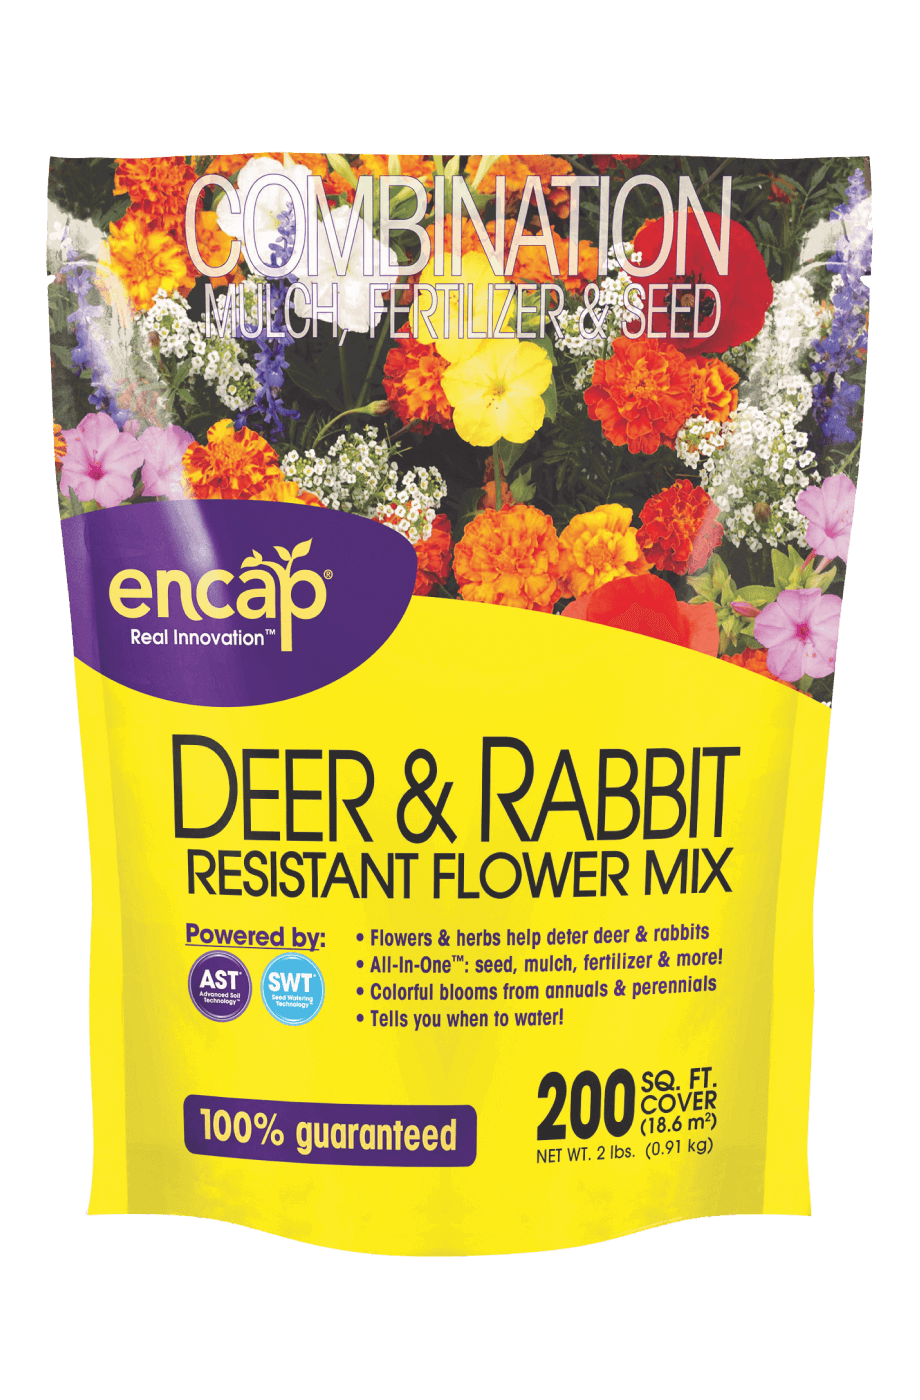 Deer & Rabbit Resistant Flower Mix Package